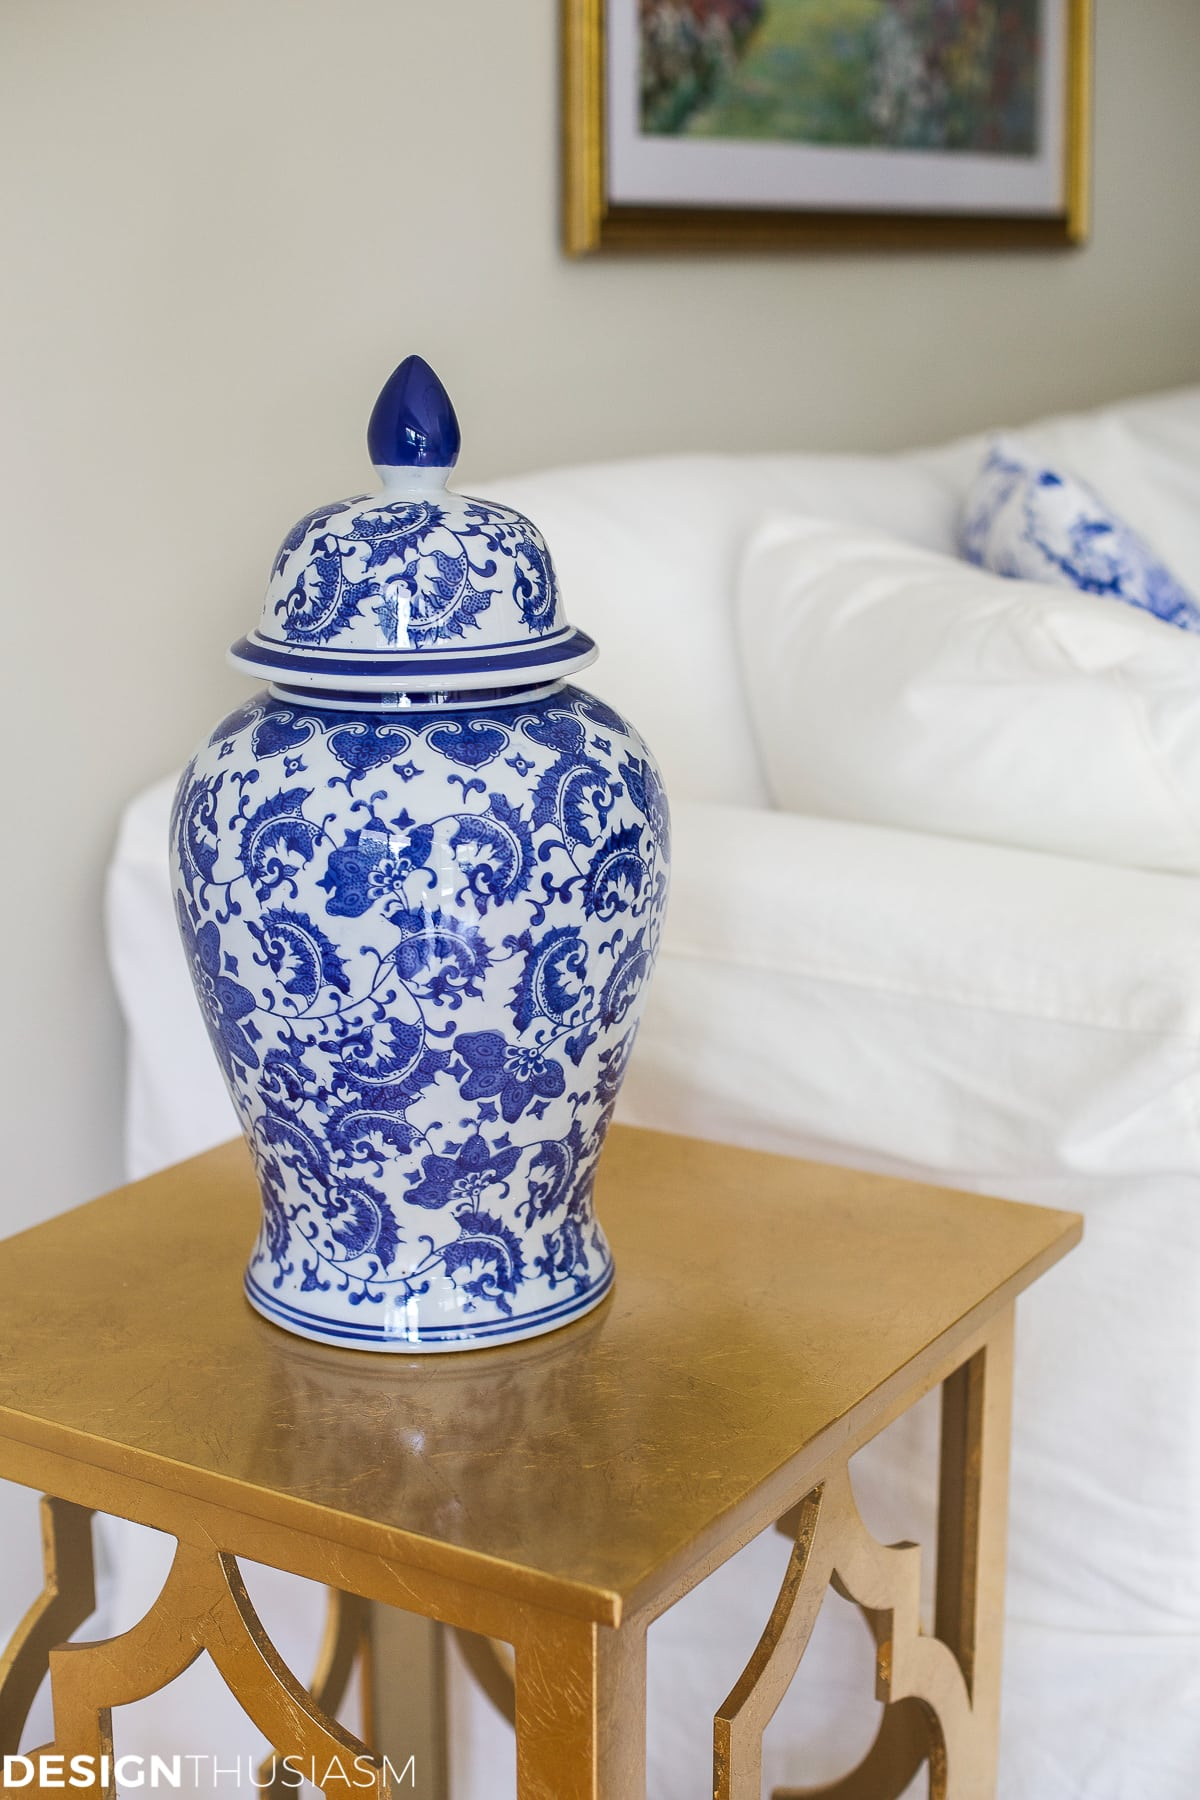 Blue And White Decor blue and white decor: maintaining your style when downsizing a home